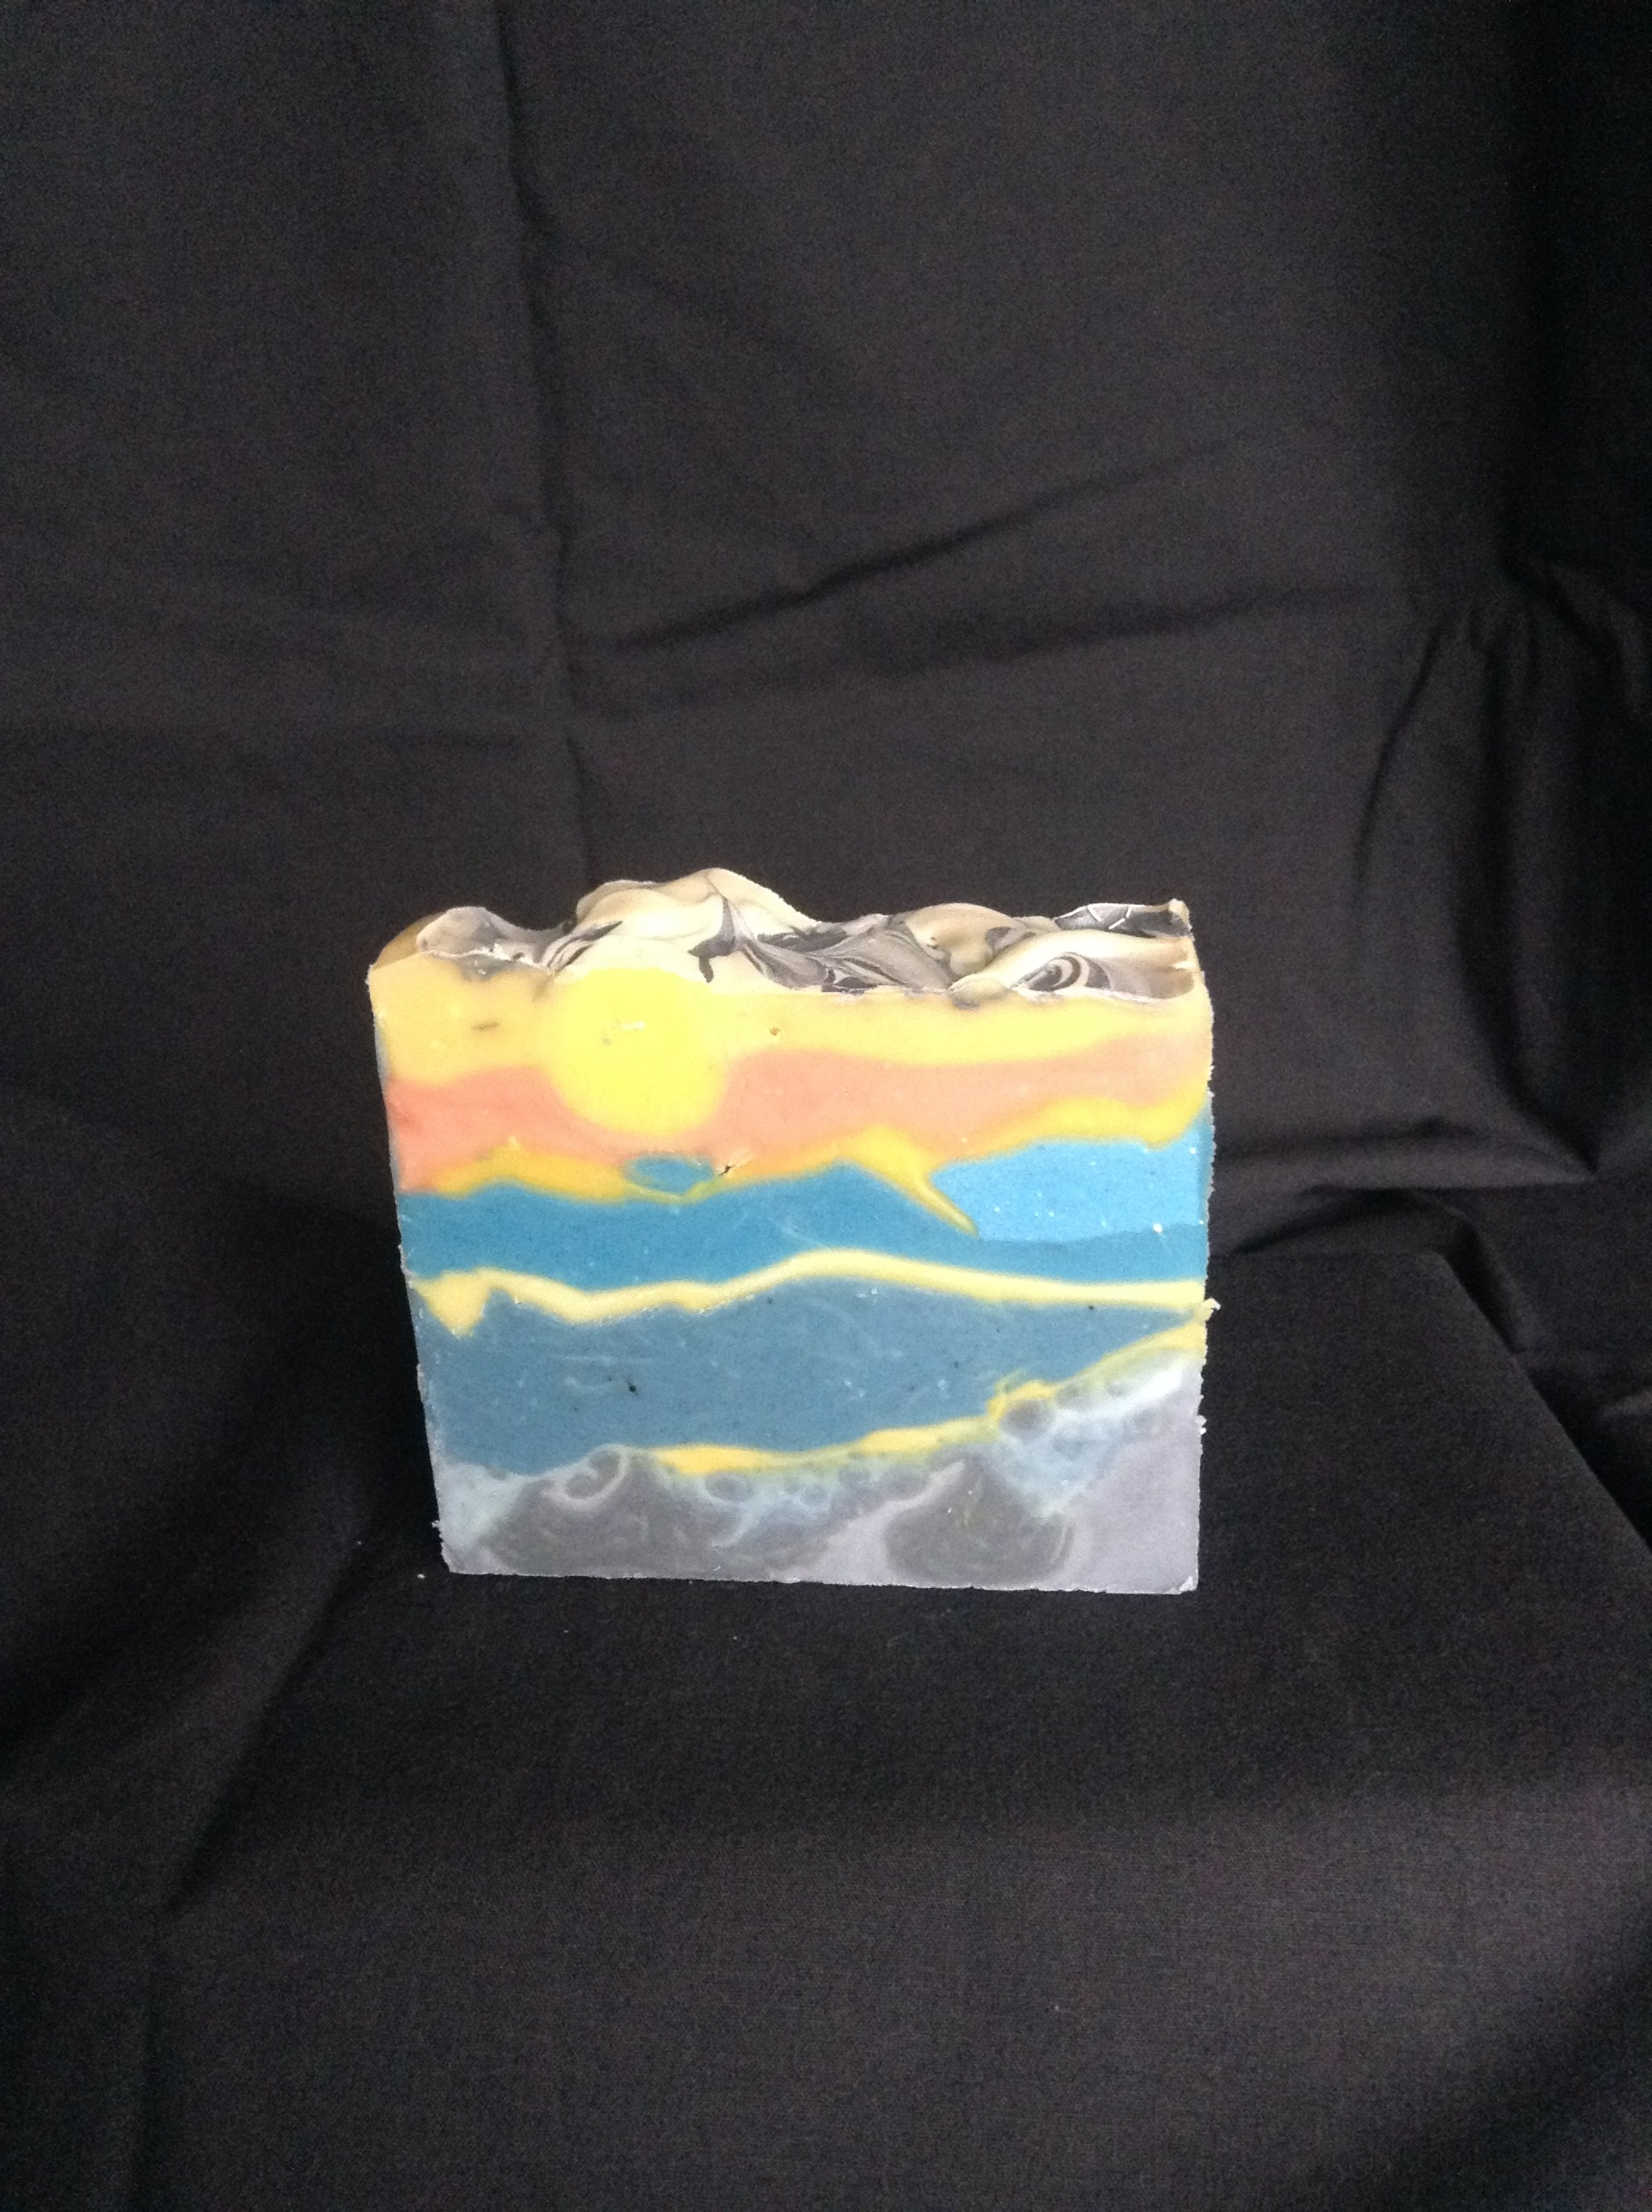 mountain sunset sculpted layers soap